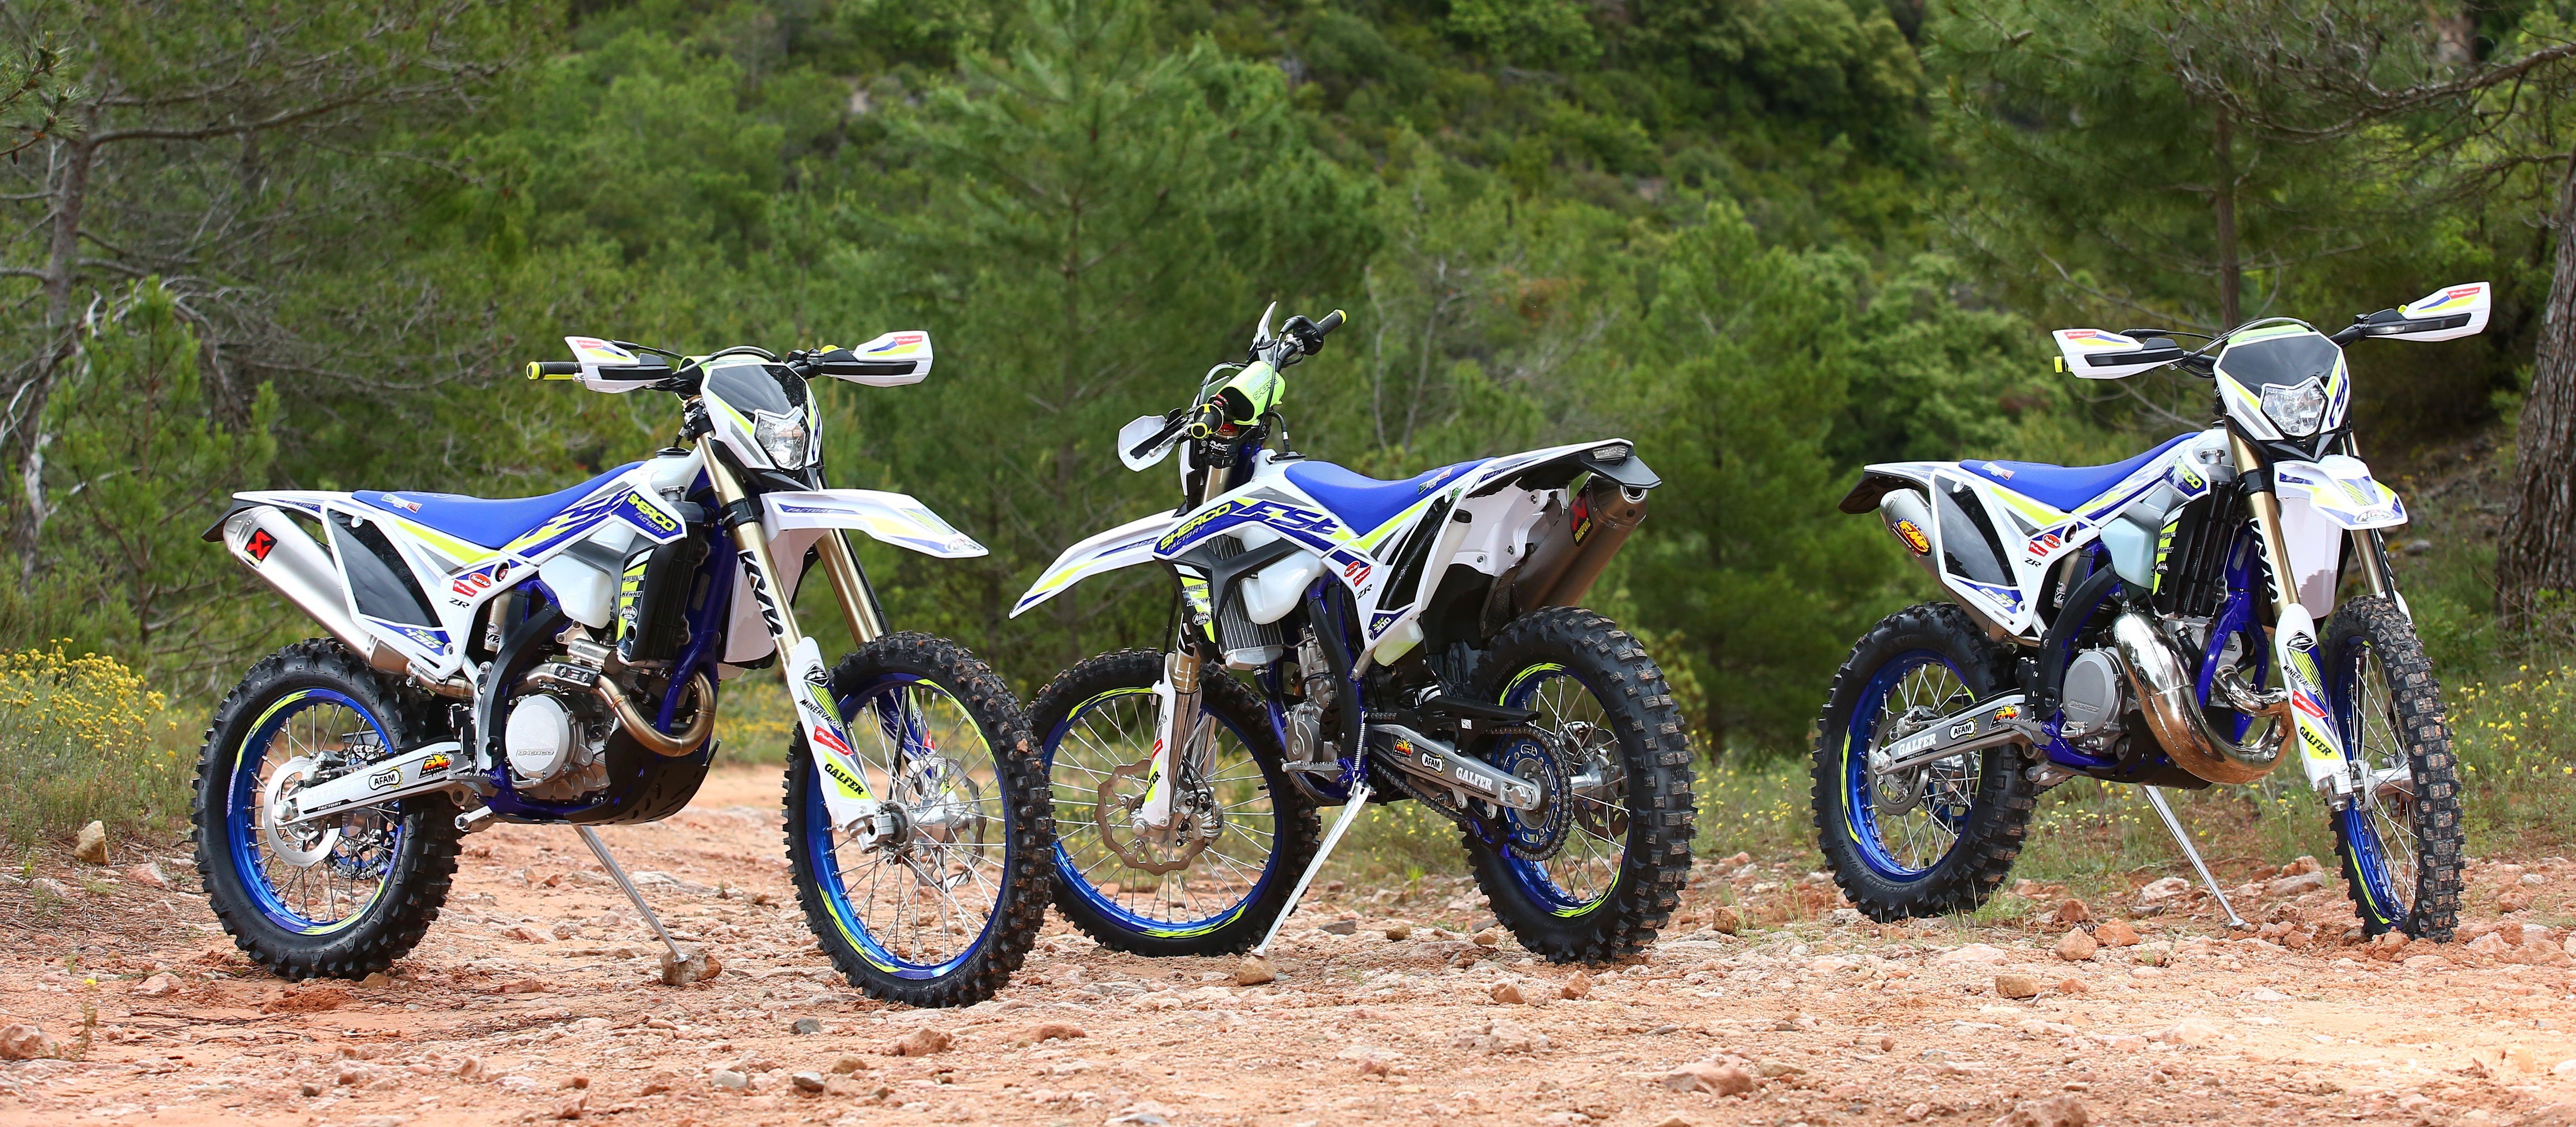 REVIEW: 2019 Sherco Factory Range - Australasian Dirt Bike Magazine